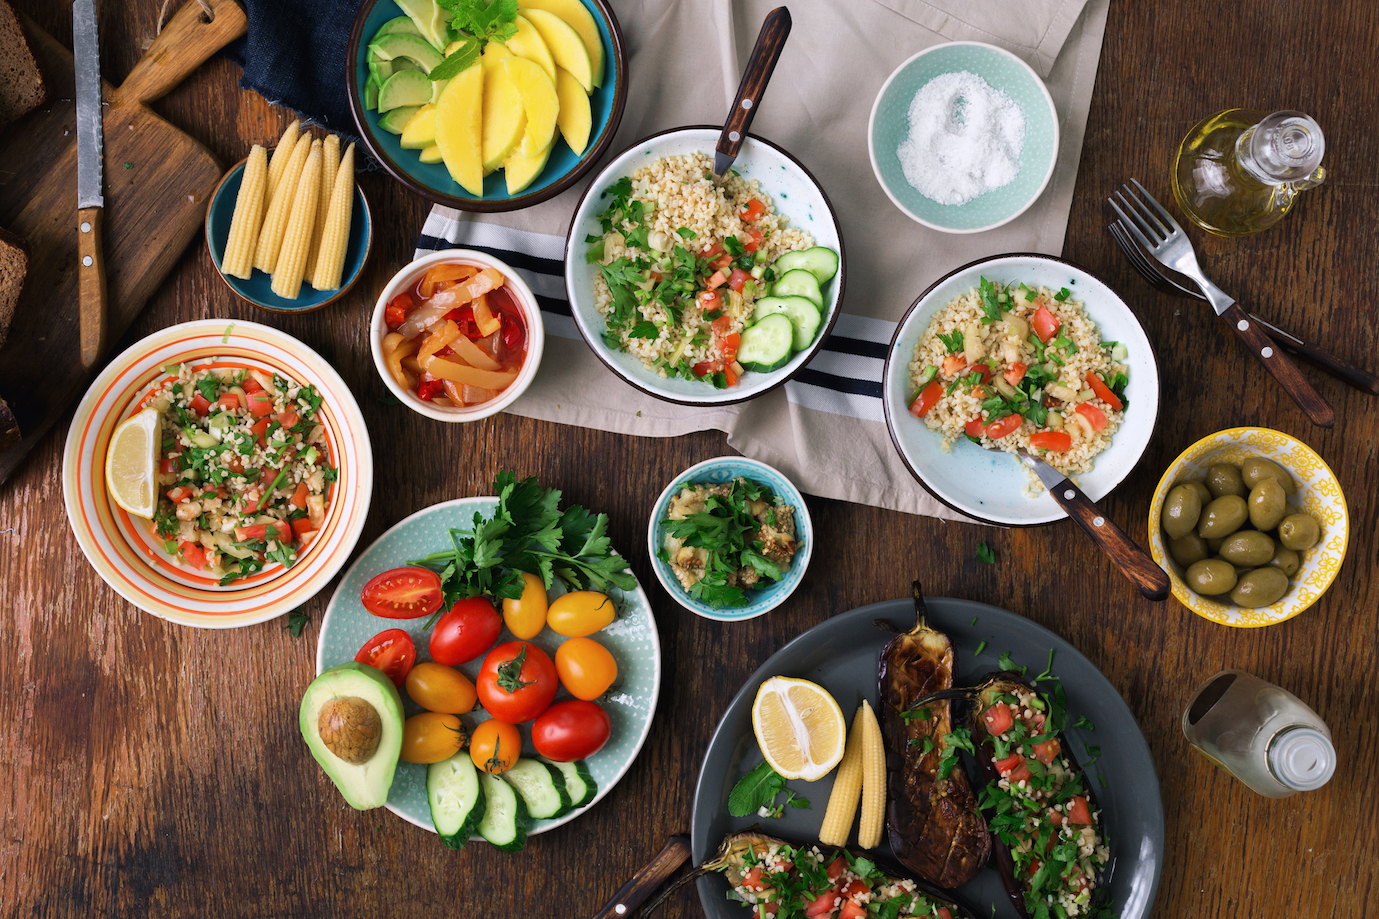 Researchers from the Nestle Research Center in Switzerland set out see how much a healthy diet actually costs and which diet would be the most cost-effective. It turns out that eating vegetarian is the most affordable option for people if they shop online.